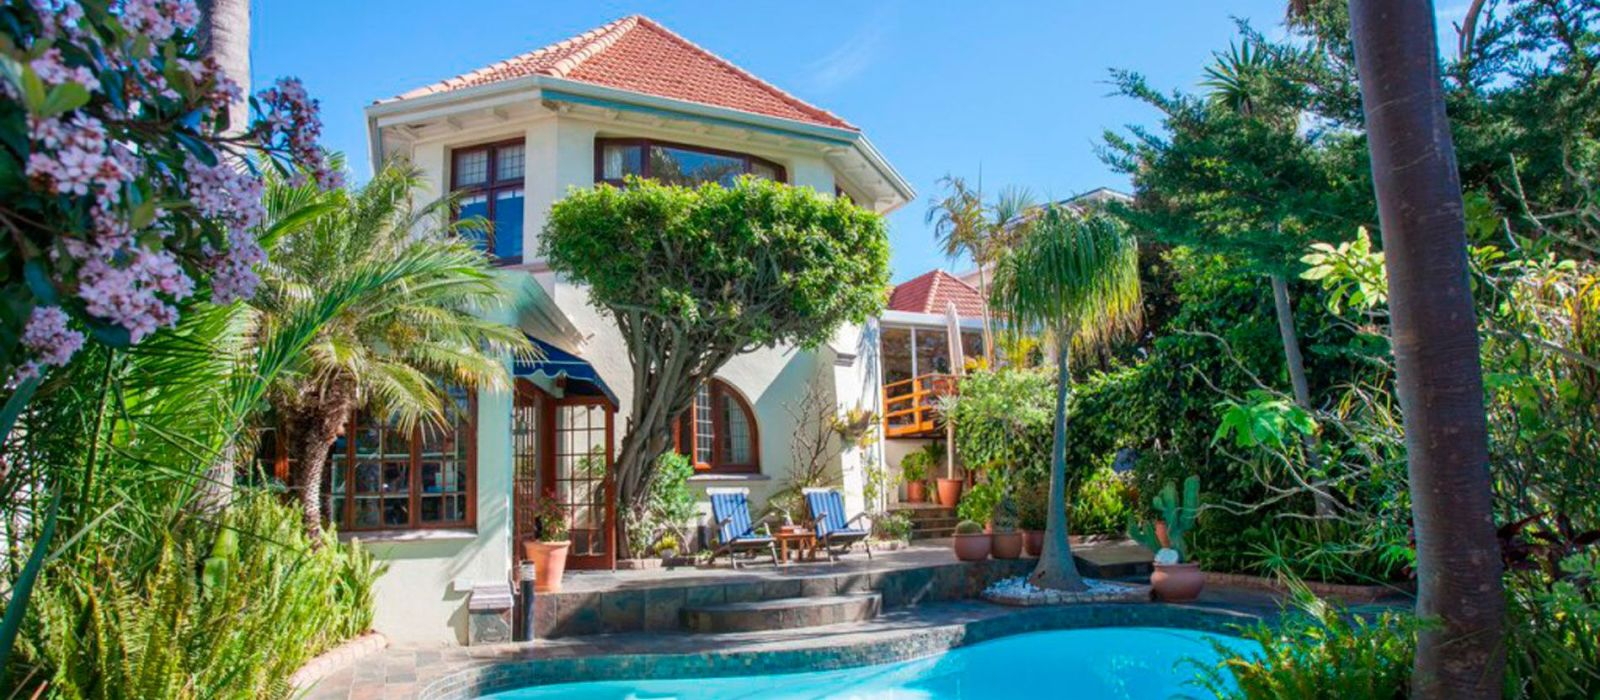 Hotel Brenwin Guest House South Africa